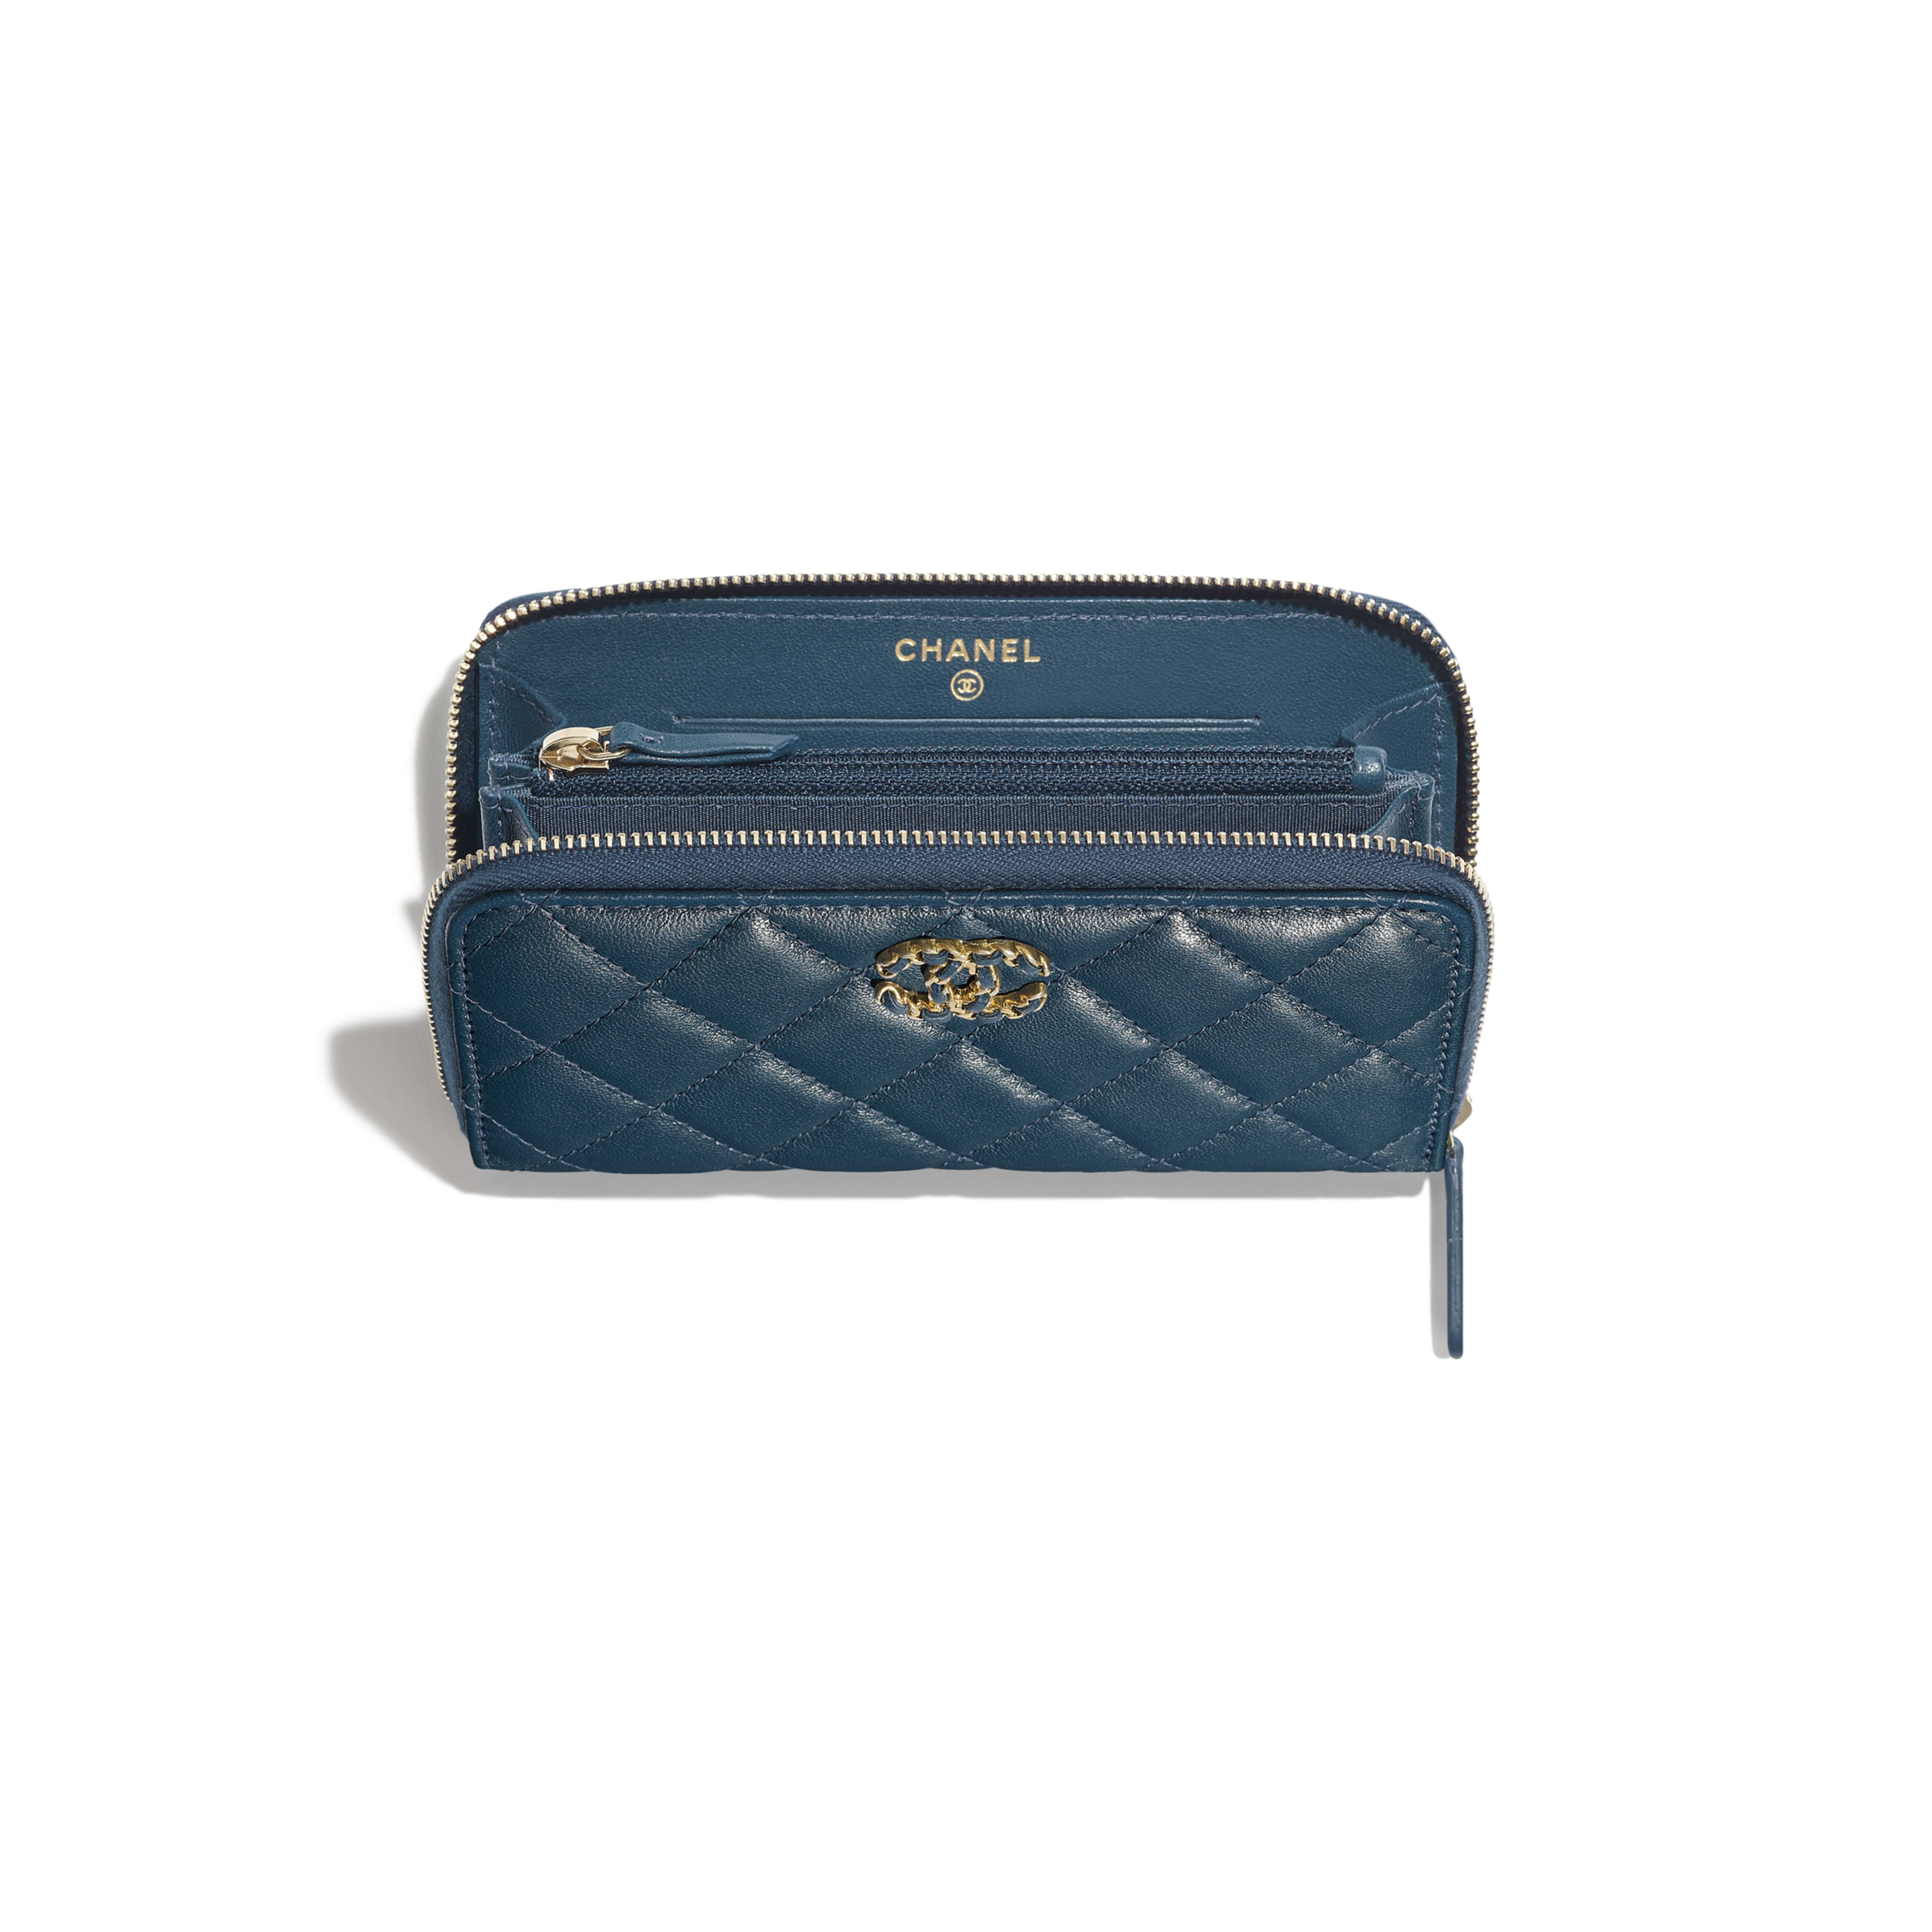 Zip Wallet - Blue - Lambskin - Other view - see full sized version